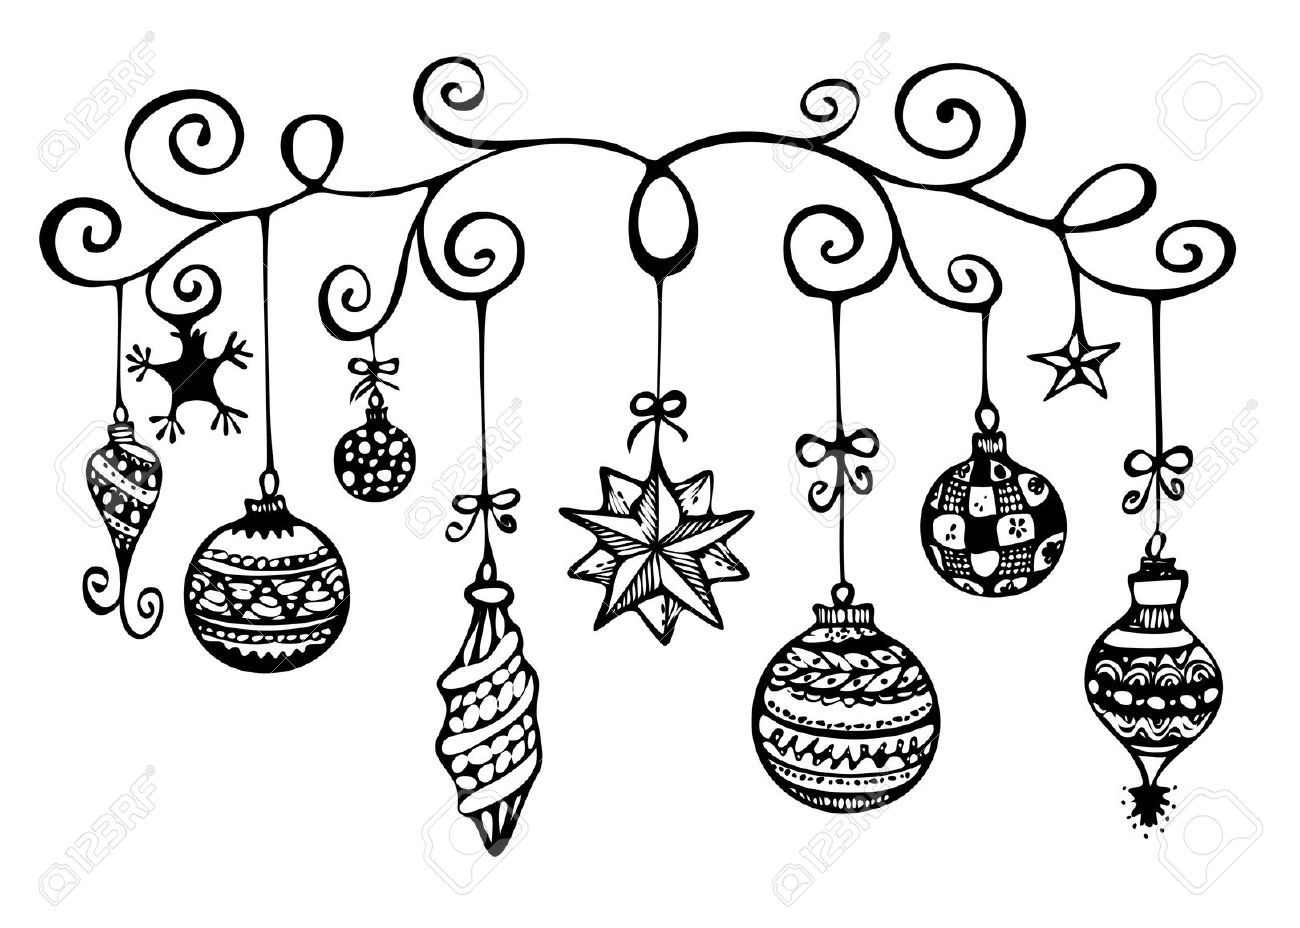 Christmas tree ornaments black and white clipart vector transparent download Christmas Tree Ornaments Clipart Black And White ...   Holiday ... vector transparent download